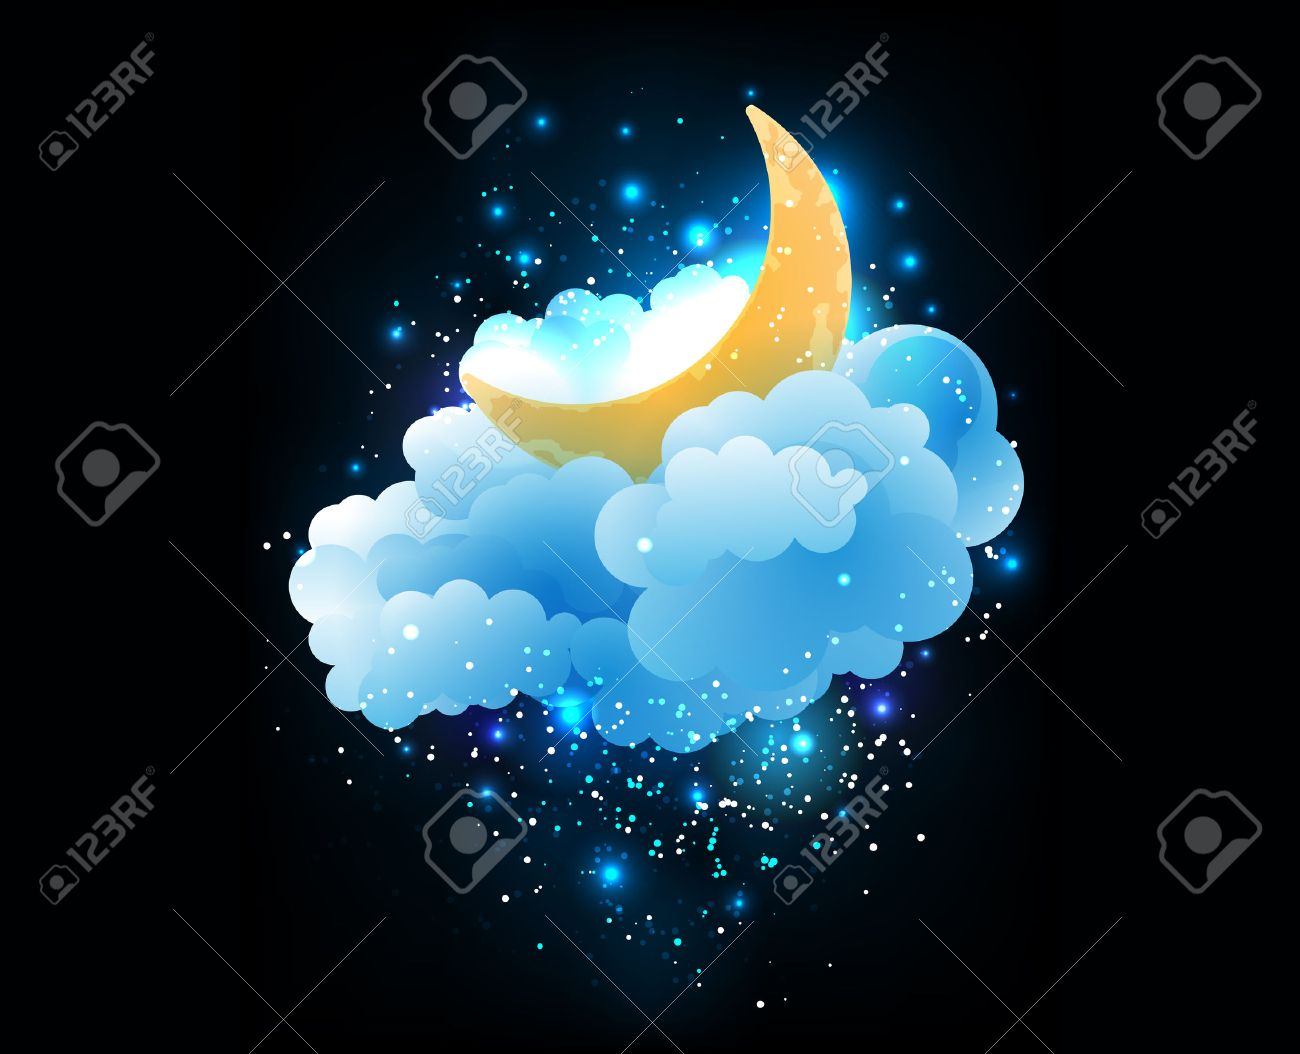 moon, clouds and stars. sweet dreams wallpaper. royalty free